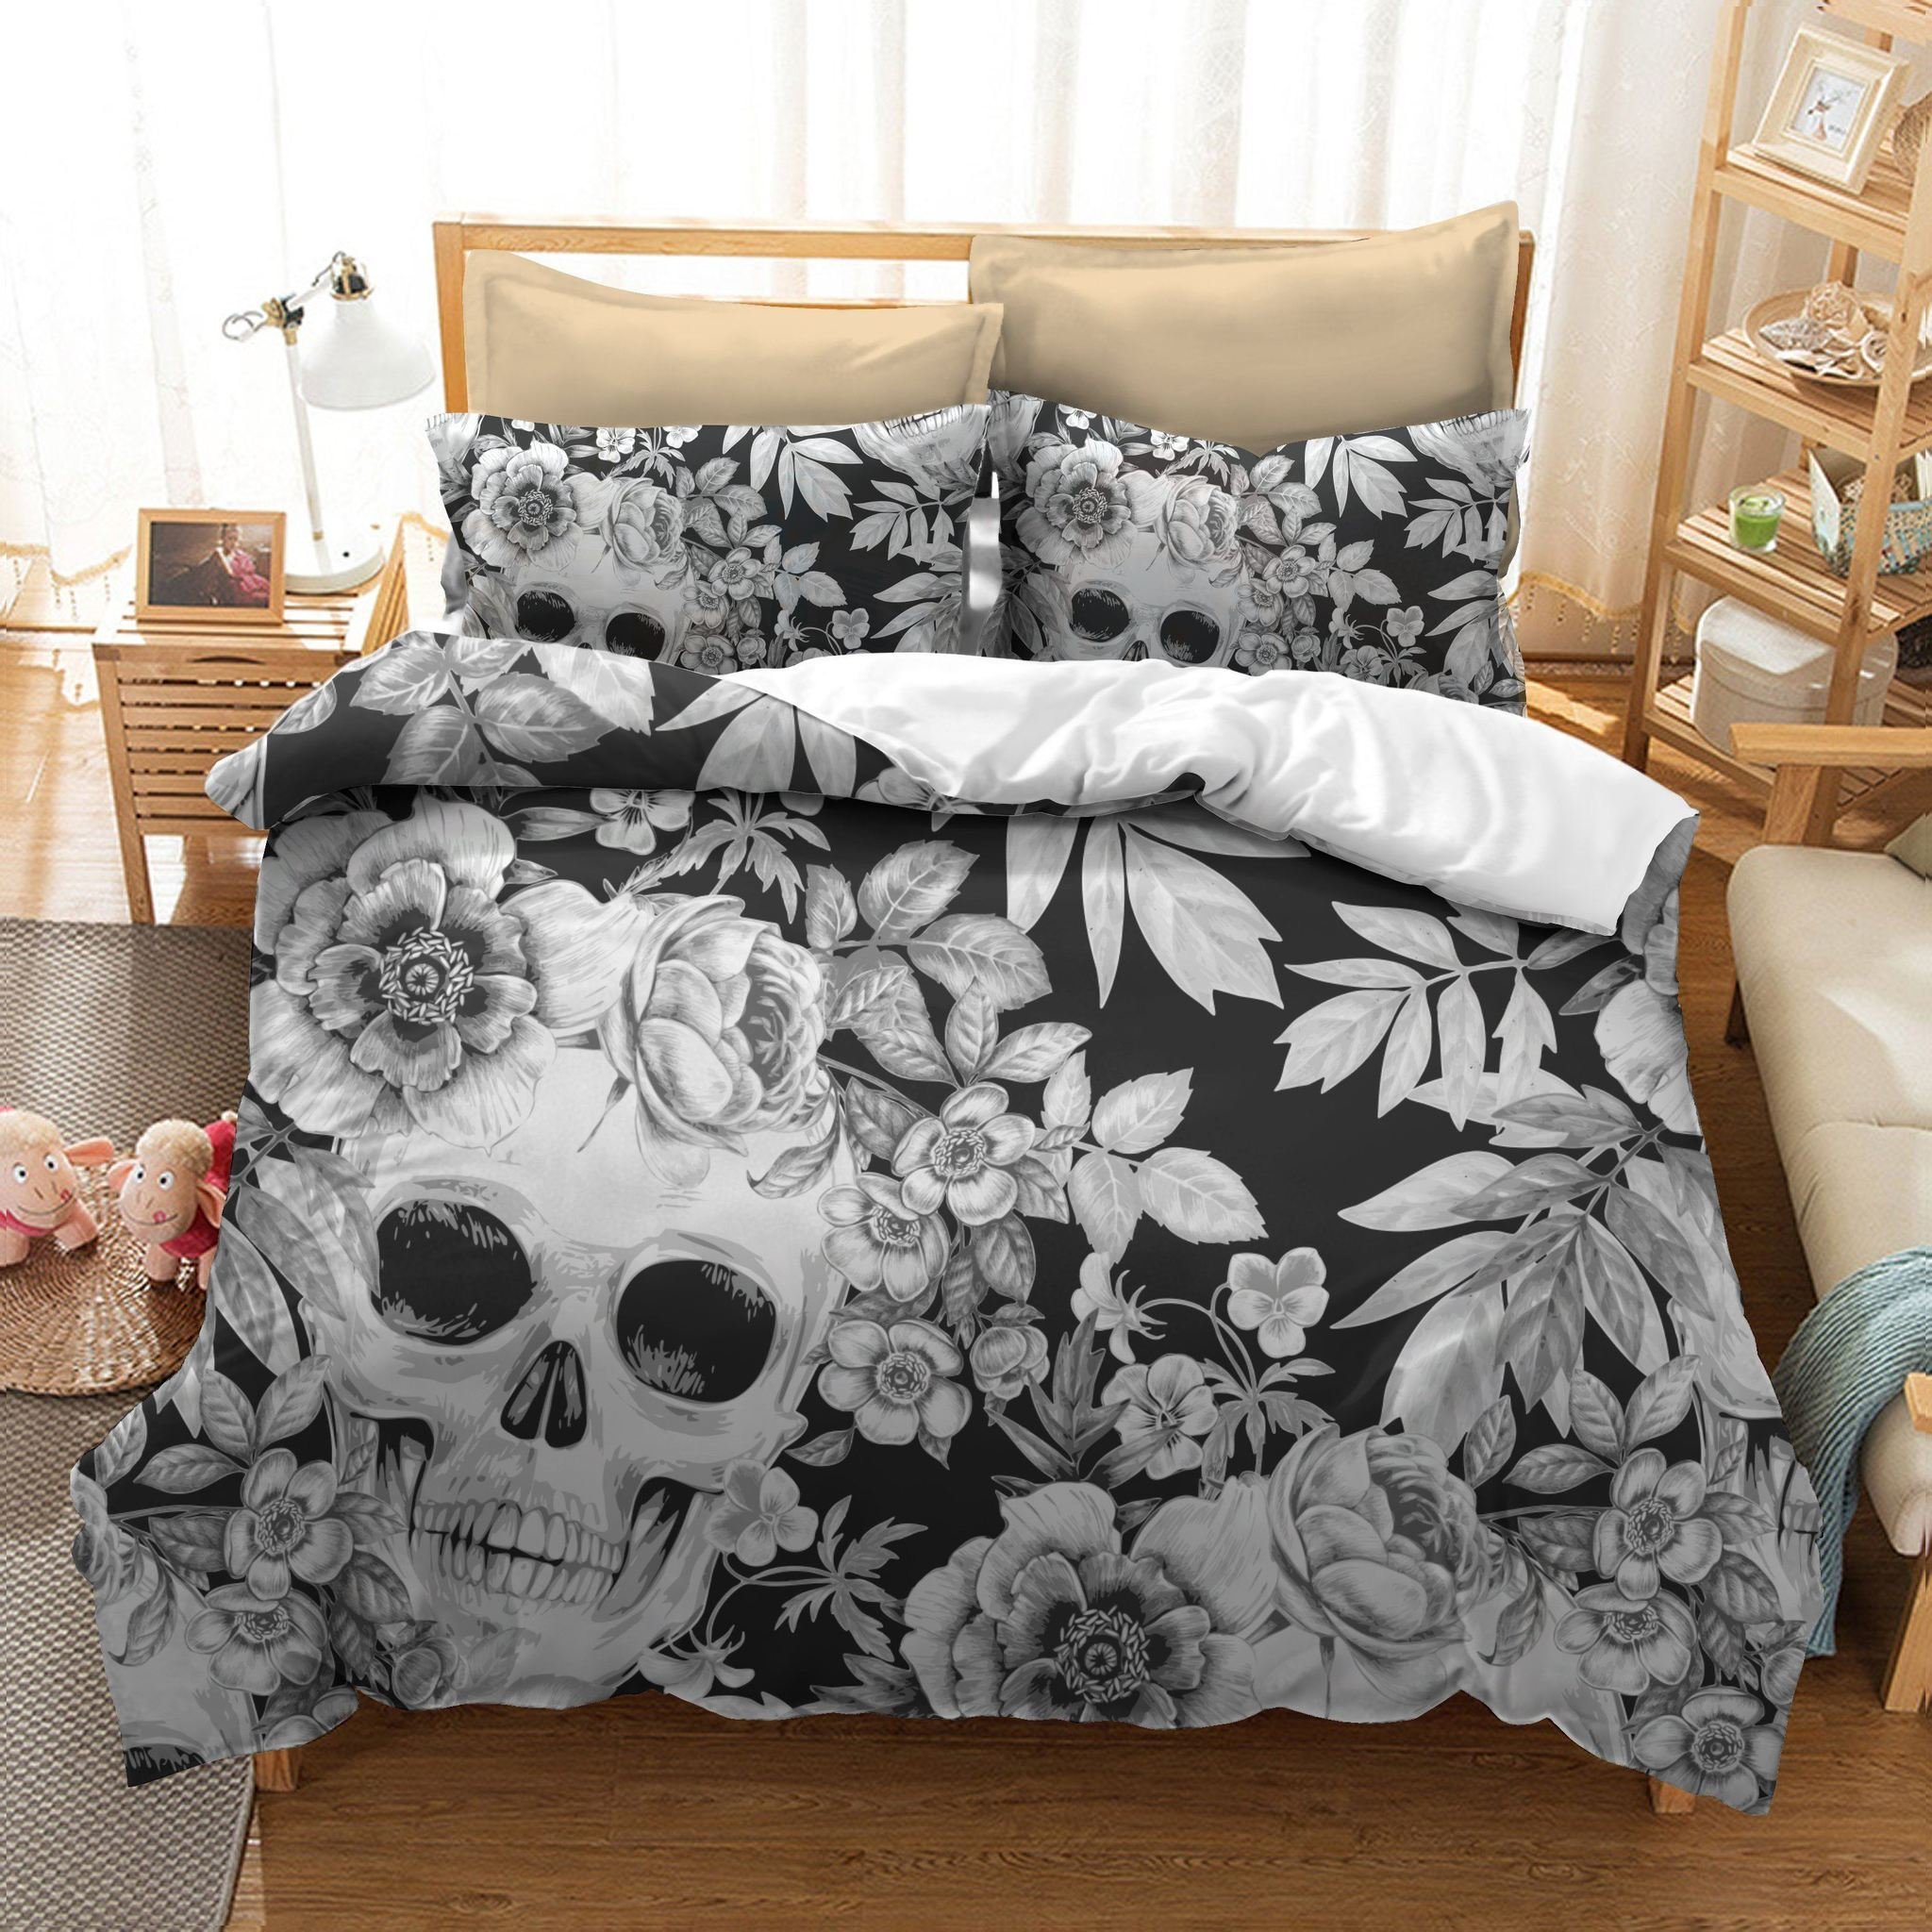 Best Sugar Skull Skull Bedding Set Skull N More Free Shipping On 100 With Pictures